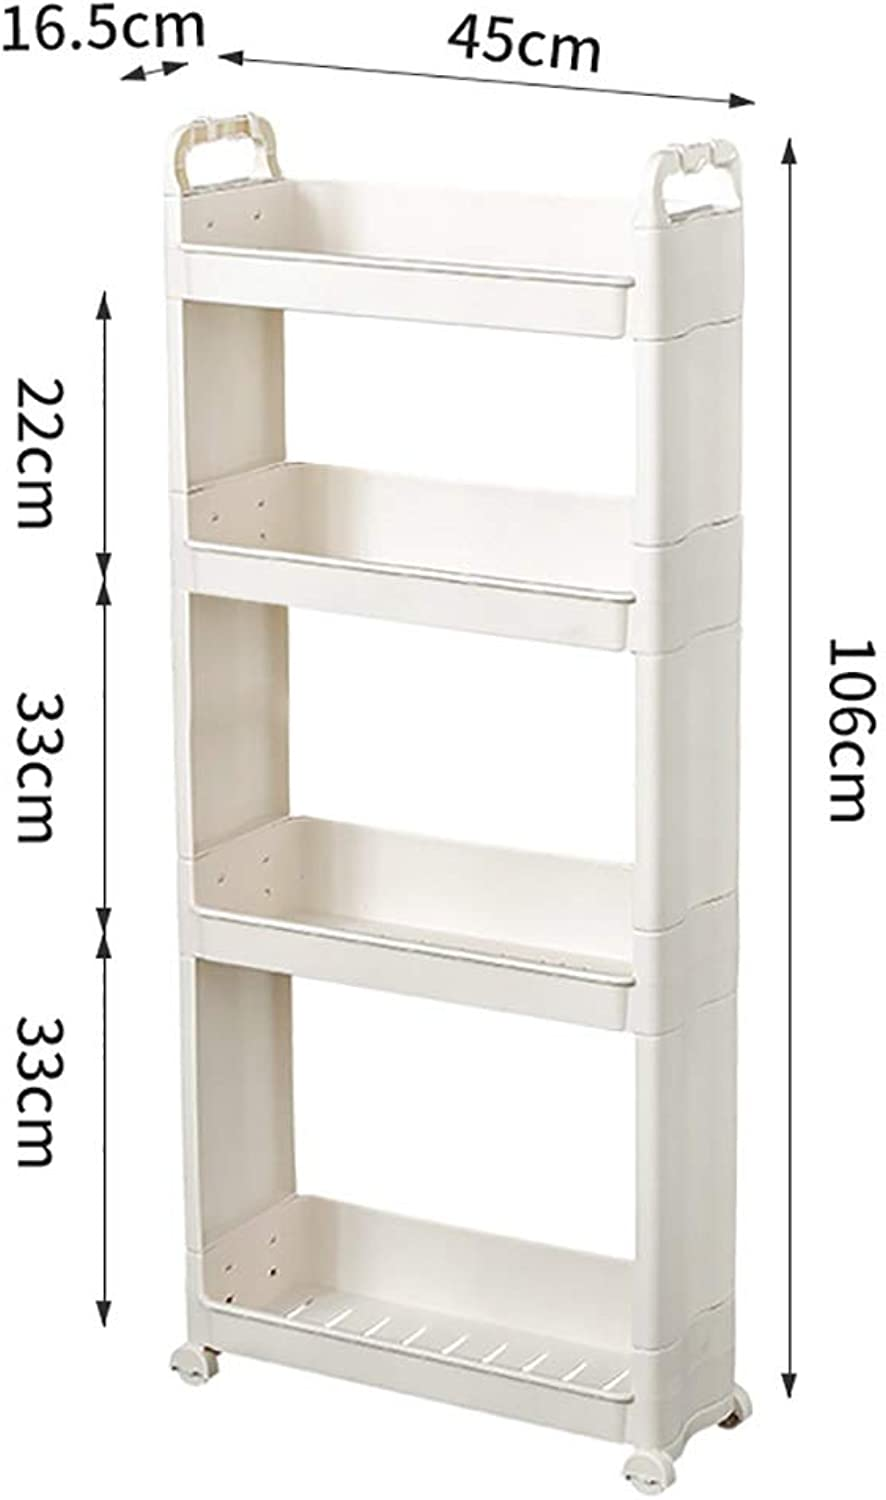 3 4 Tiers Clamping Rack, Pulley Movable Bathroom Gap Storage Shelf Landing for The Kitchen Bathroom (color   B)